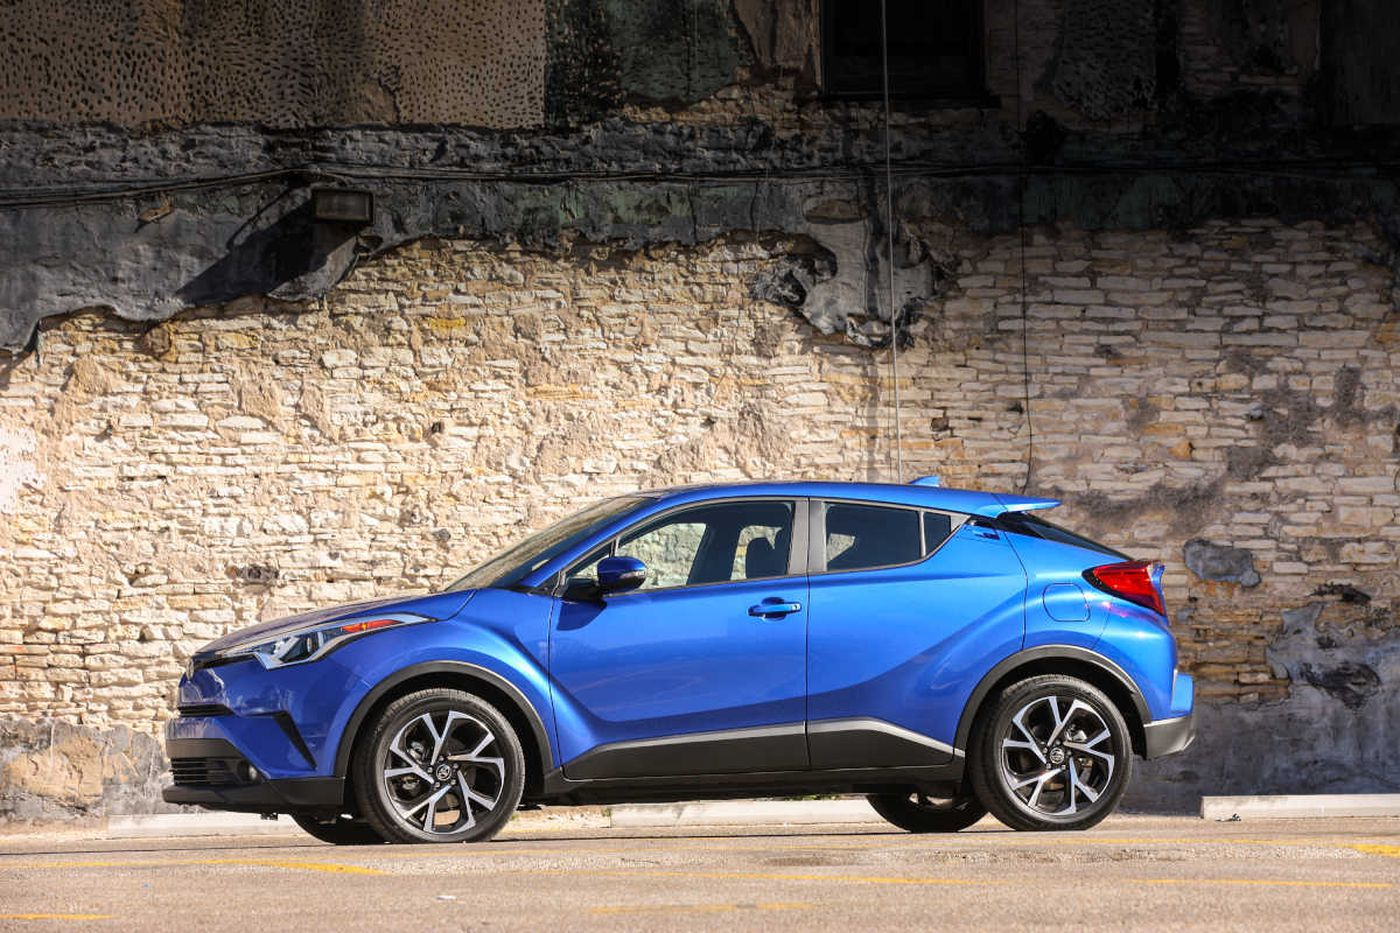 Toyota C-HR is a fun but quirky head-turner